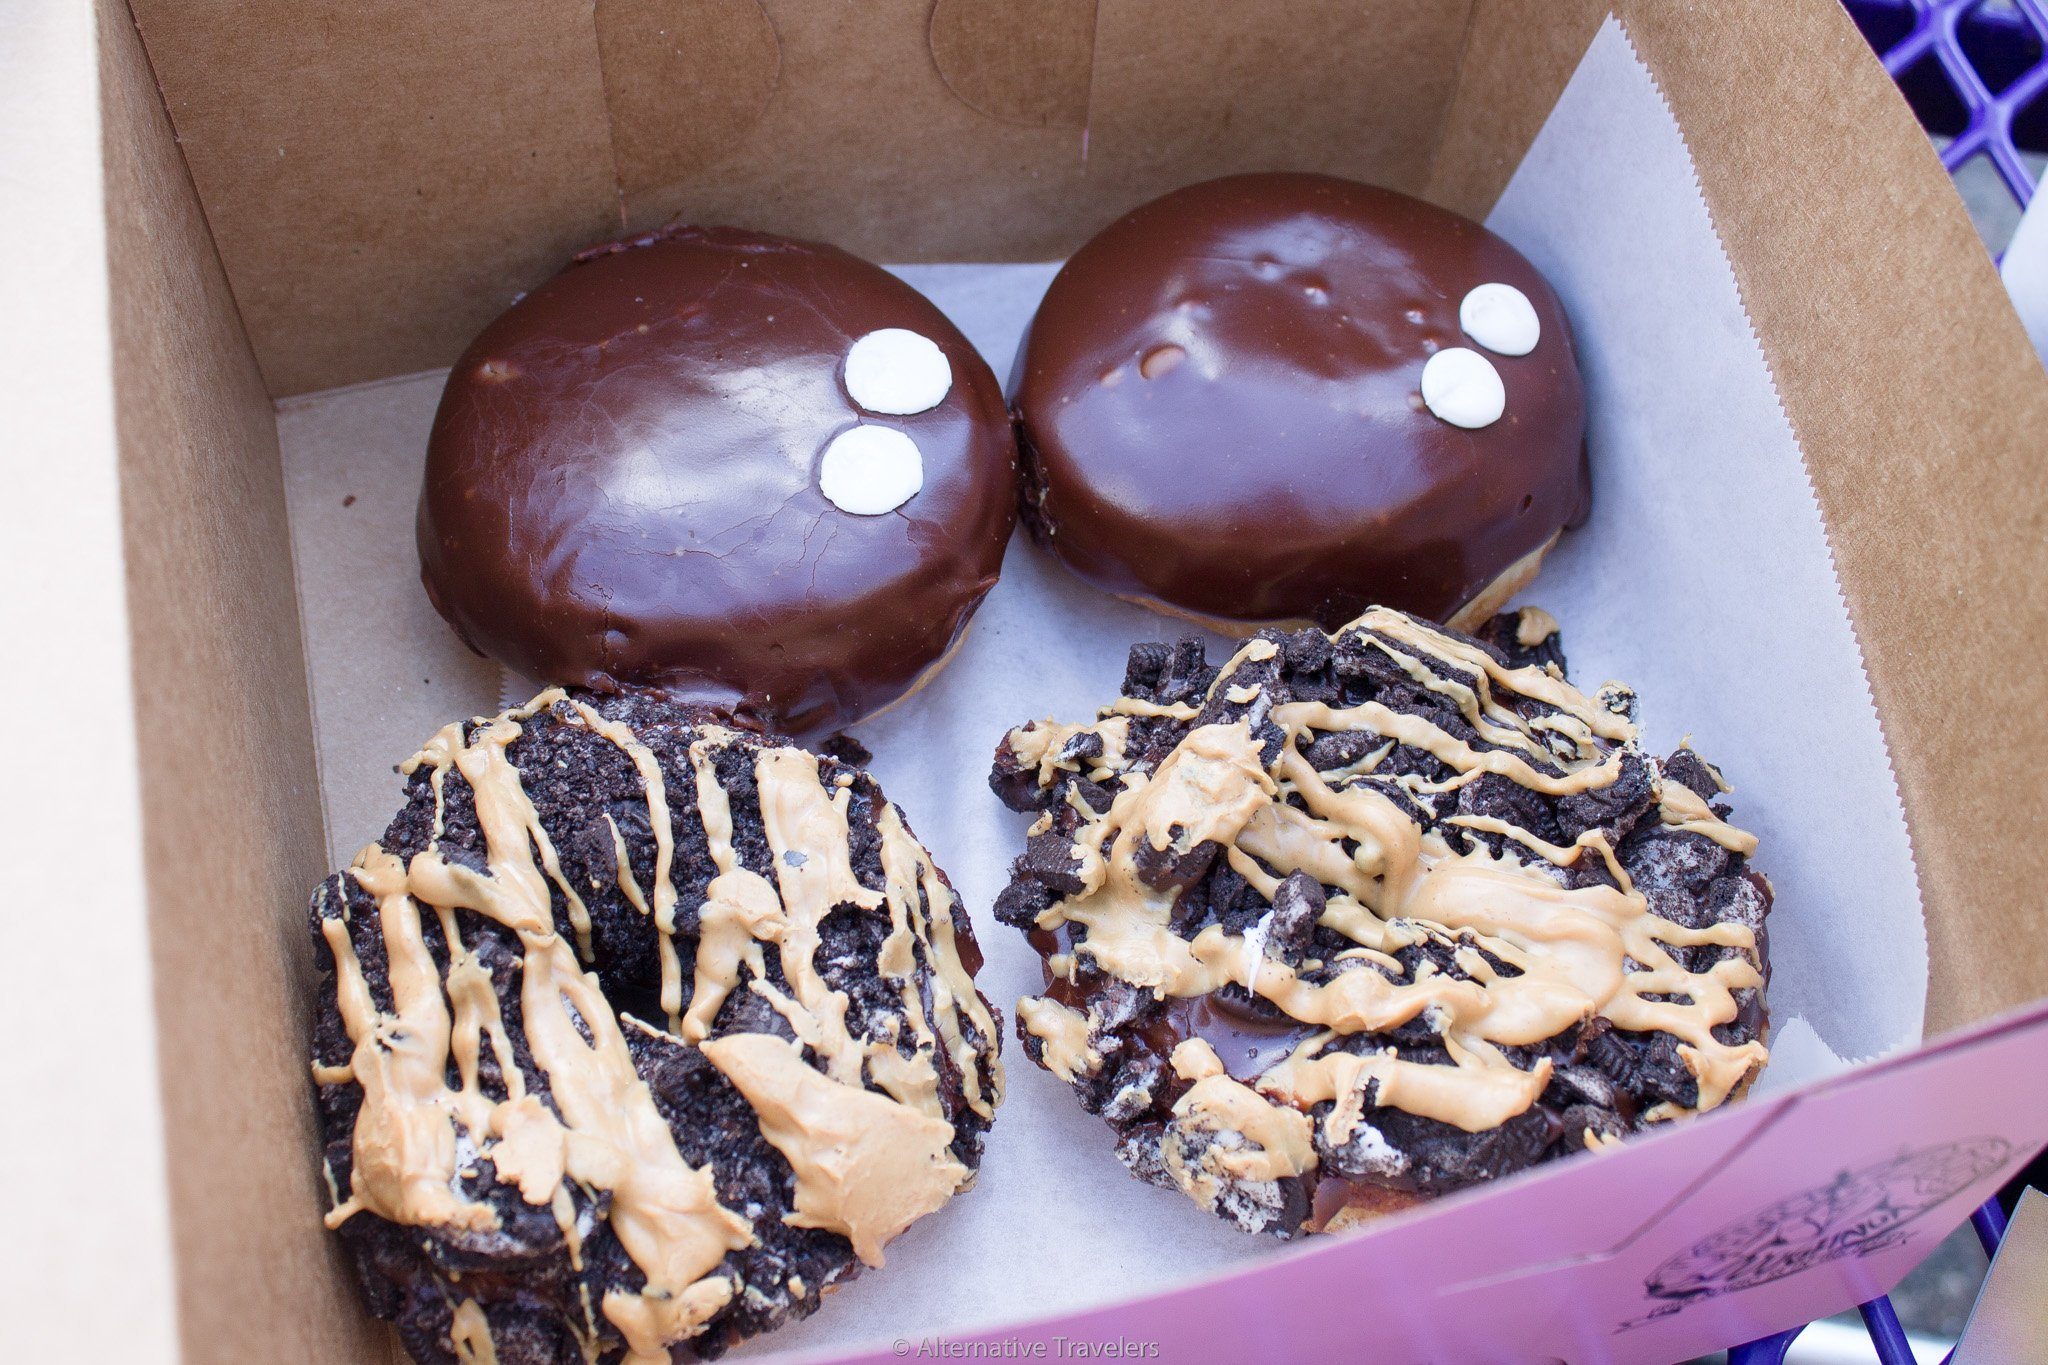 box of chocolate iced and topped vegan donuts at Voodoo Donuts in Portland.